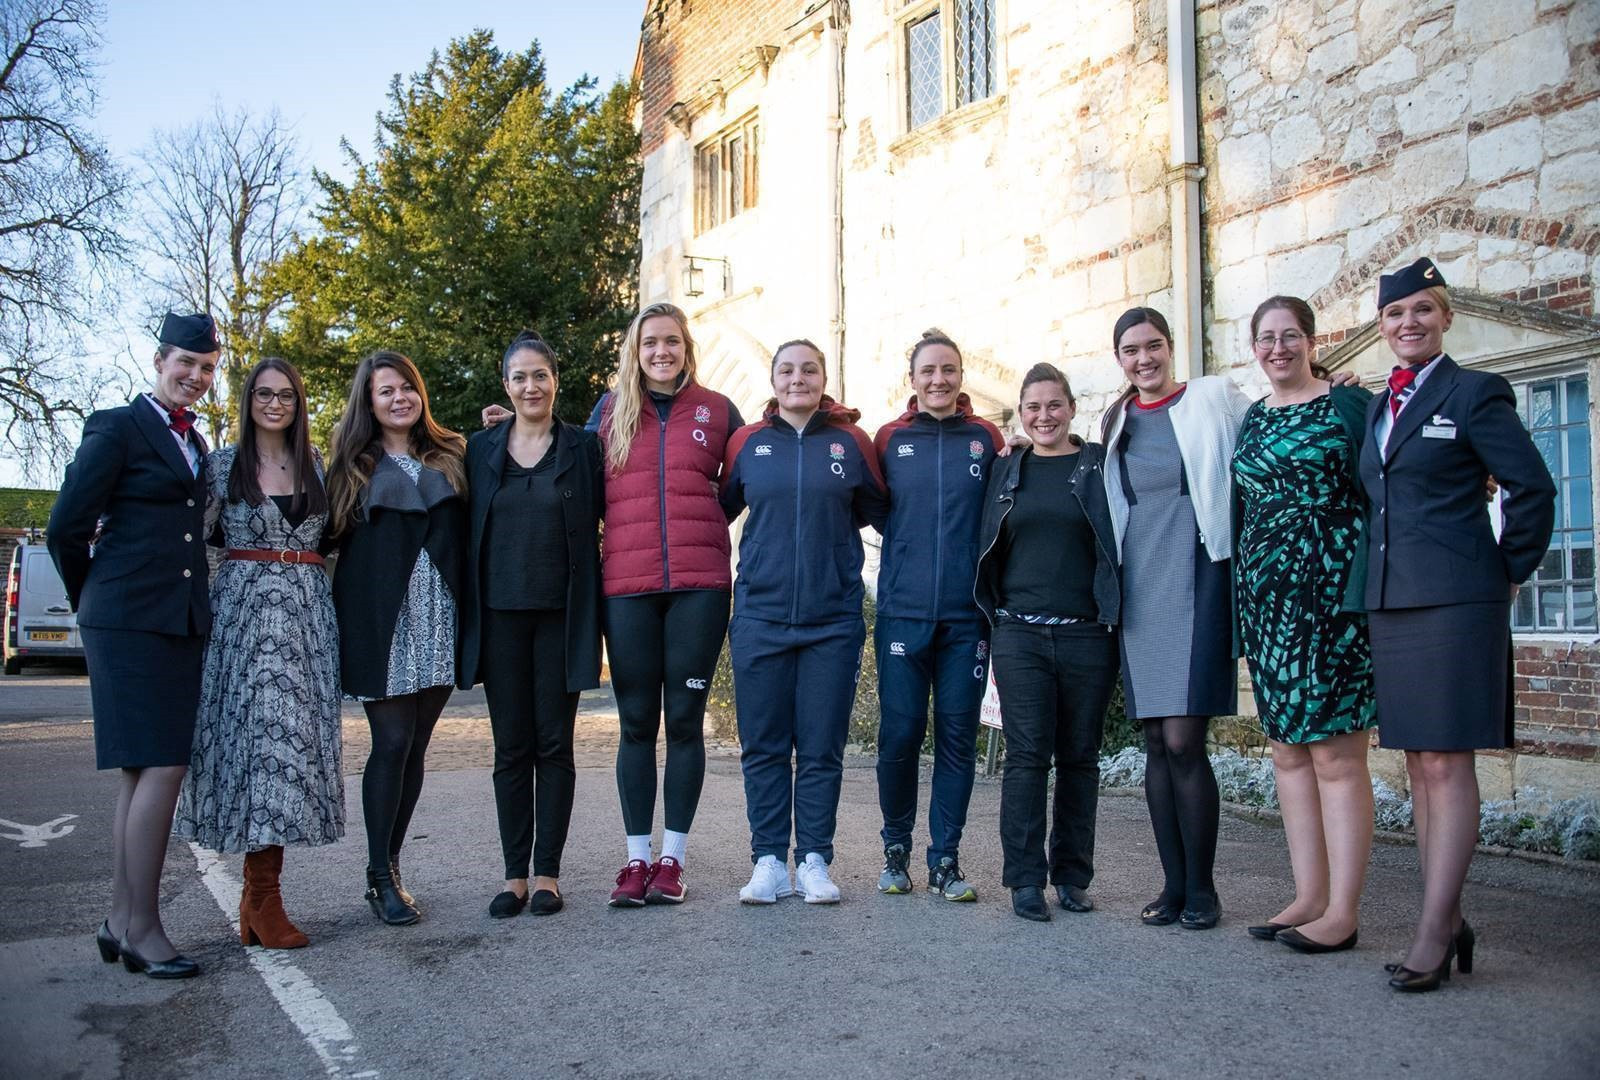 Staff from the British Airways female mentoring programme met with Amy Cokayne, Sarah McKenna and Zoe Aldcroft from England Rugby ©British Airways